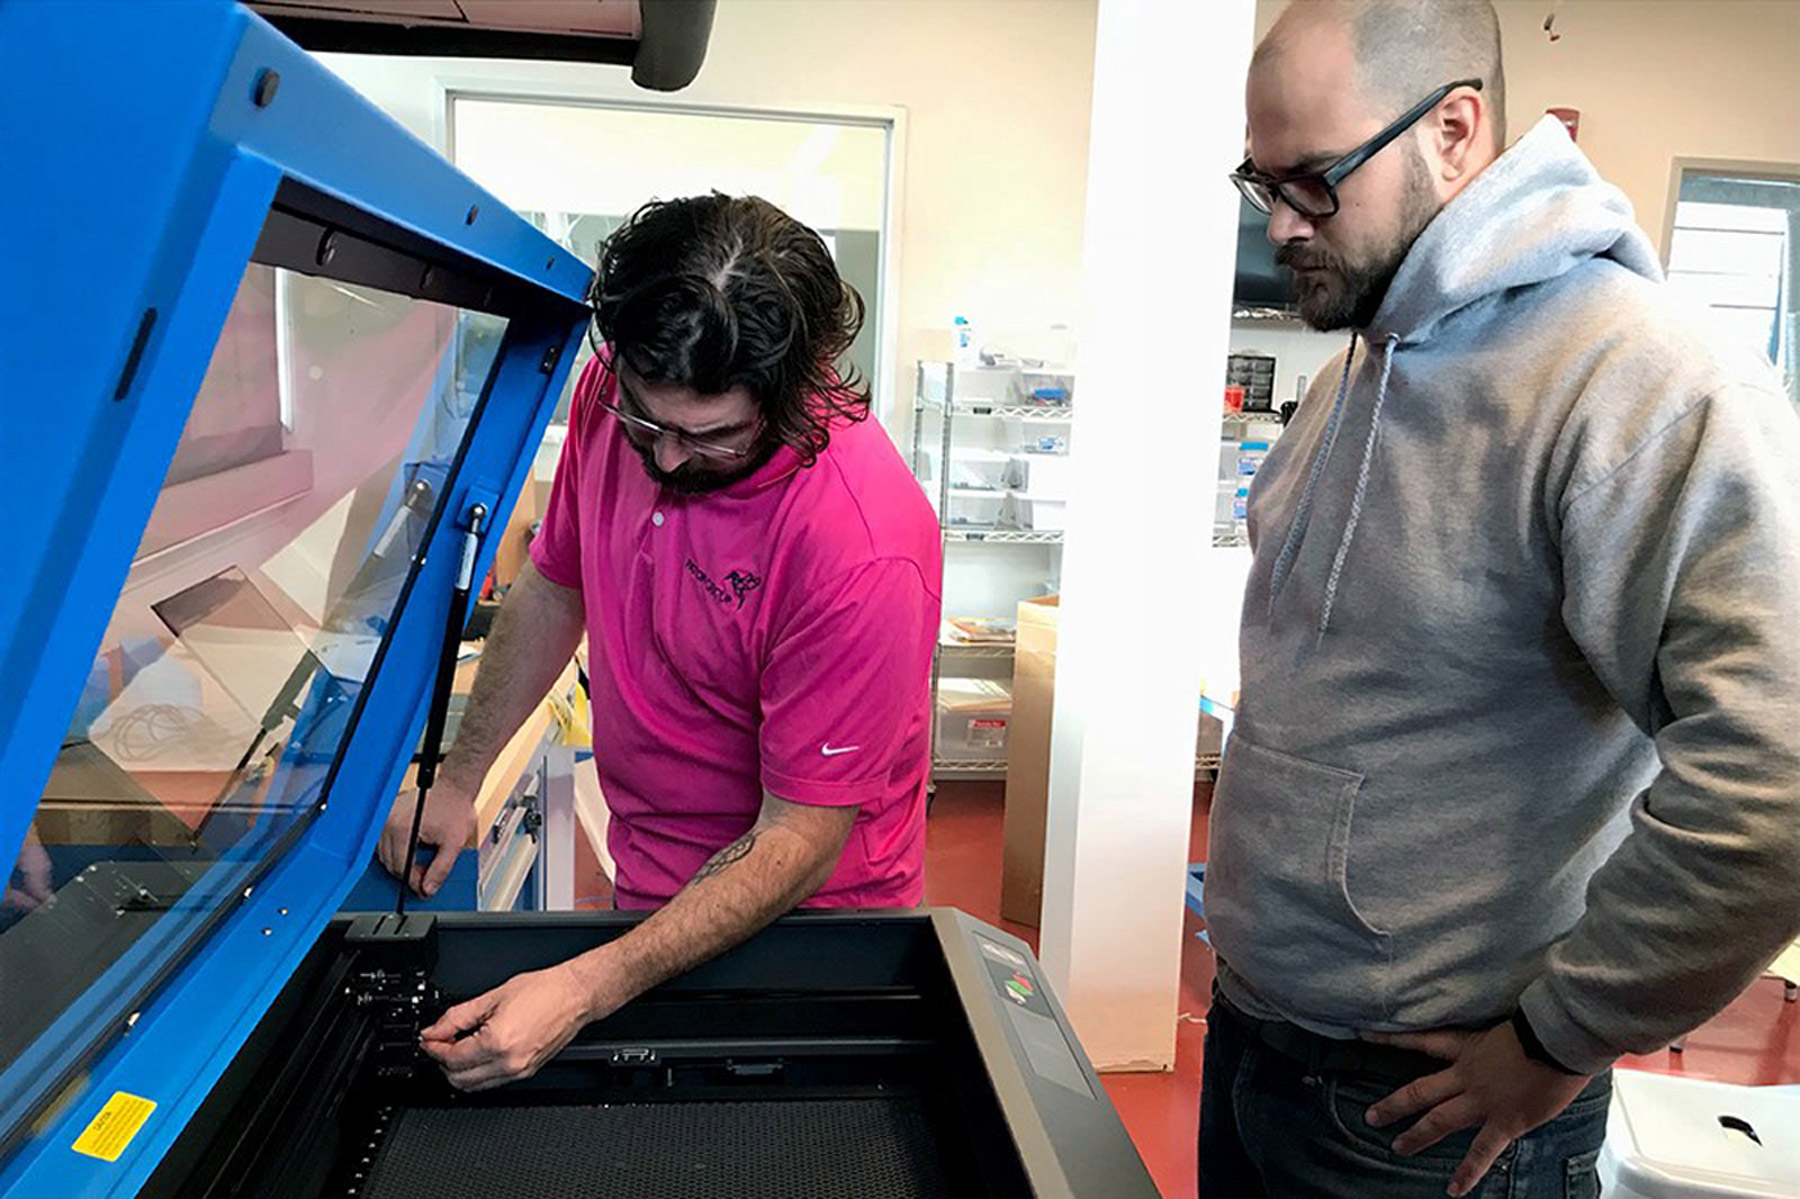 Installing the Laser Cutter